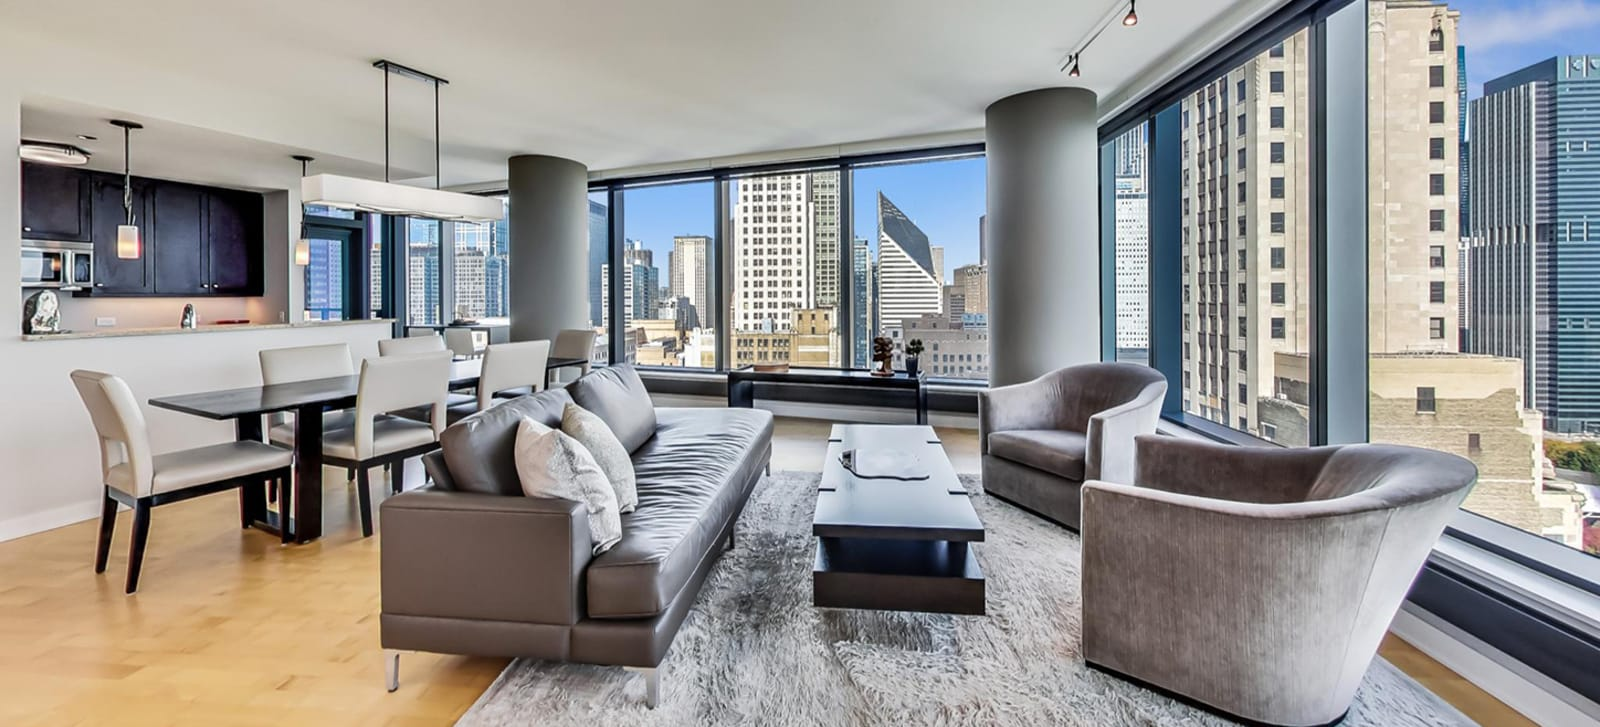 Find Luxury Real Estate in The Loop | Corcoran Urban Real Estate